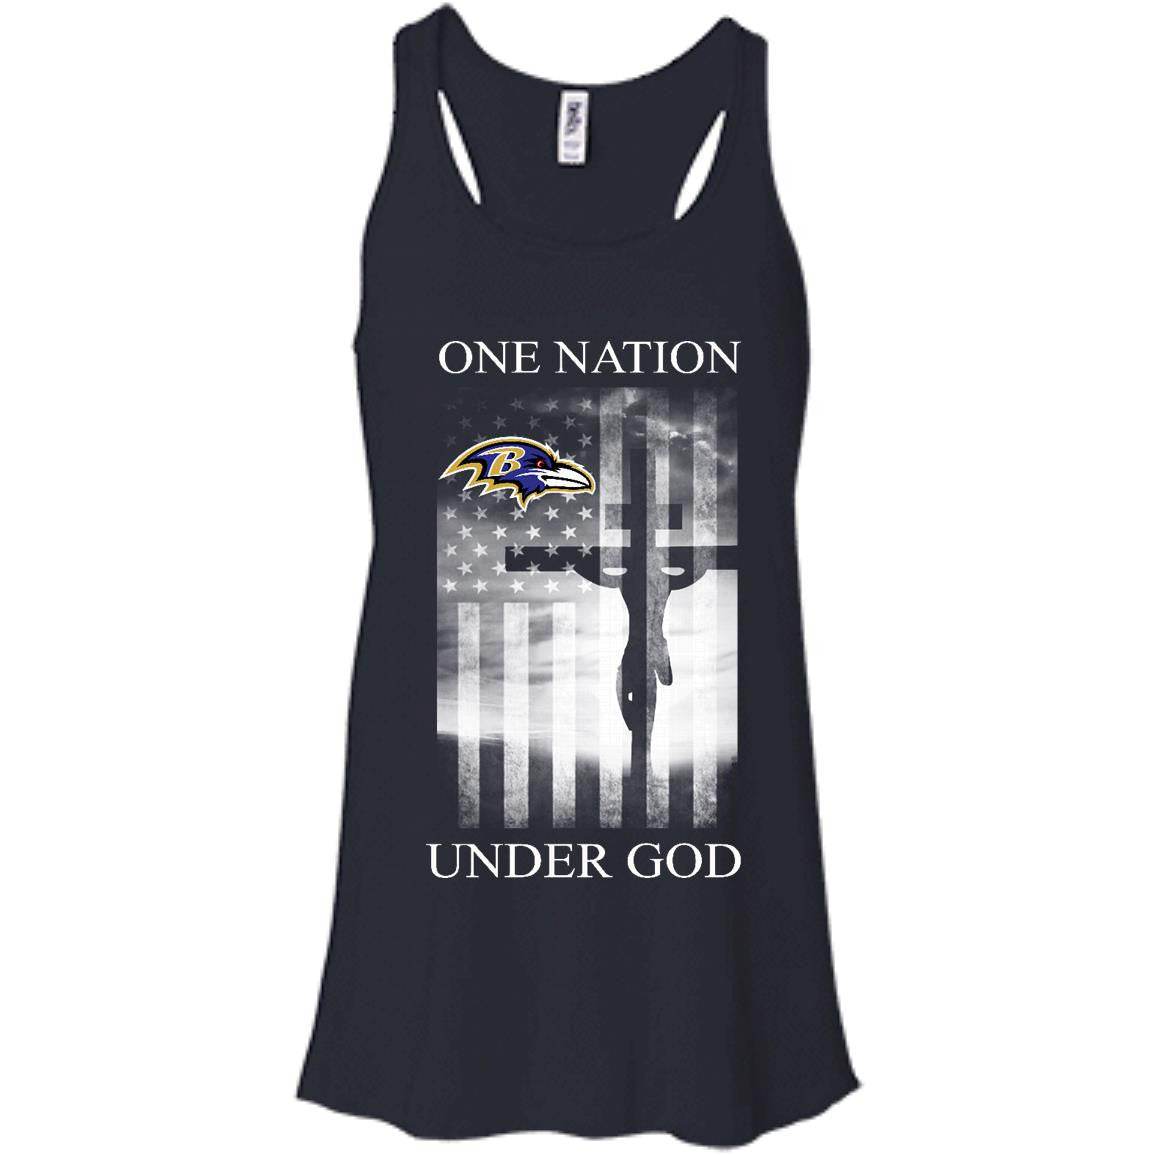 Baltimore Ravens Shirts One Nation Under God T-shirts Hoodies Sweatshirts